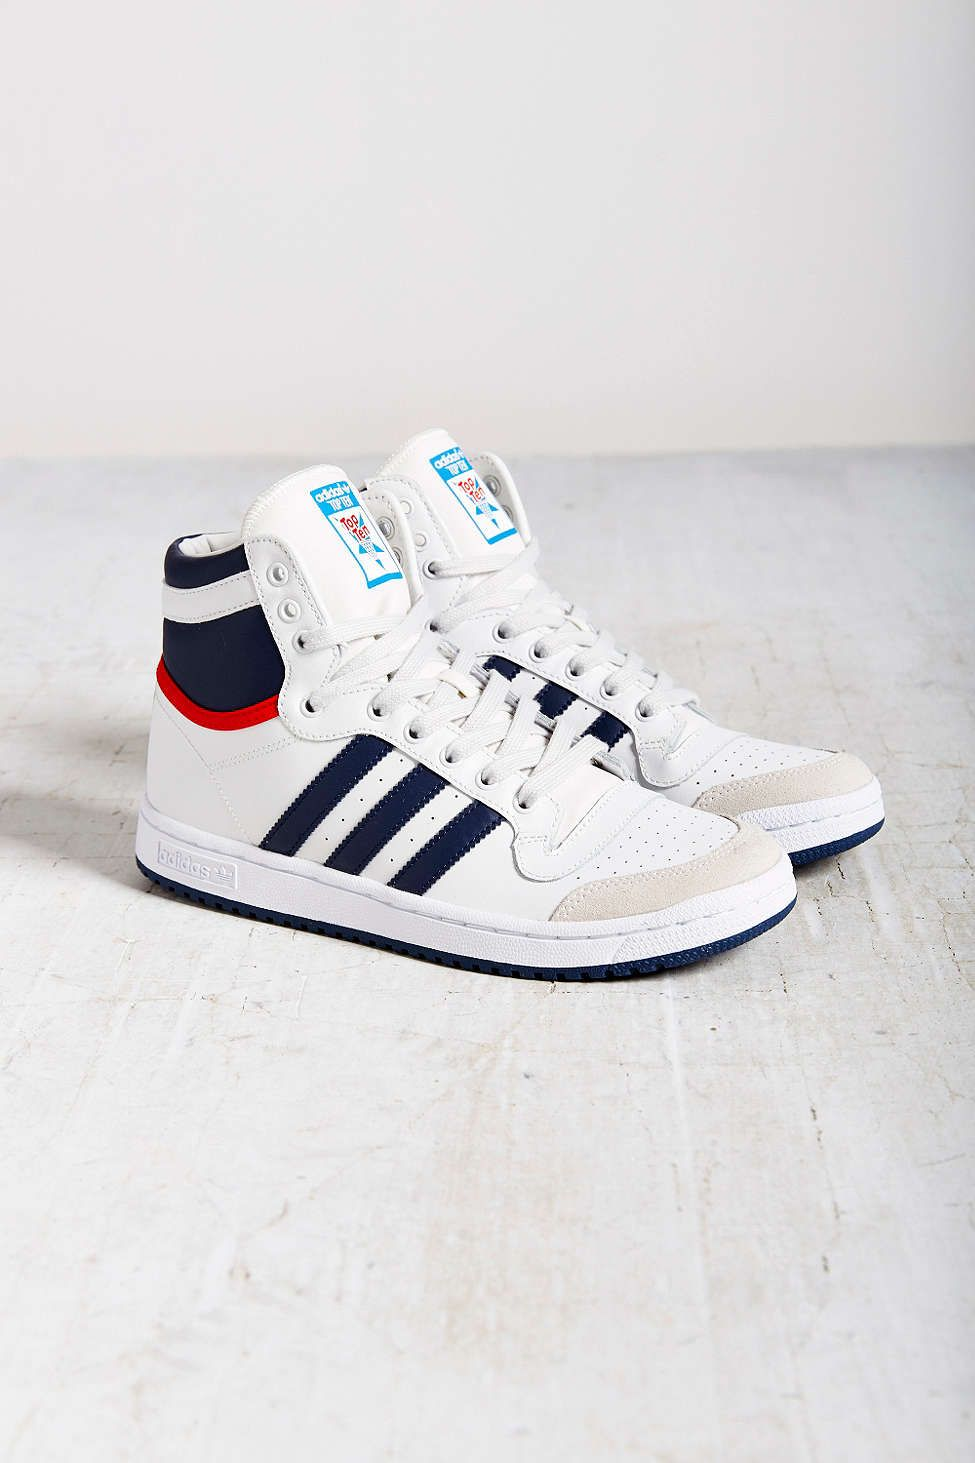 Desafío físicamente tenedor  adidas Originals Top Ten Hi Retro Sneaker | Adidas shoes women, Retro  sneakers, New adidas shoes